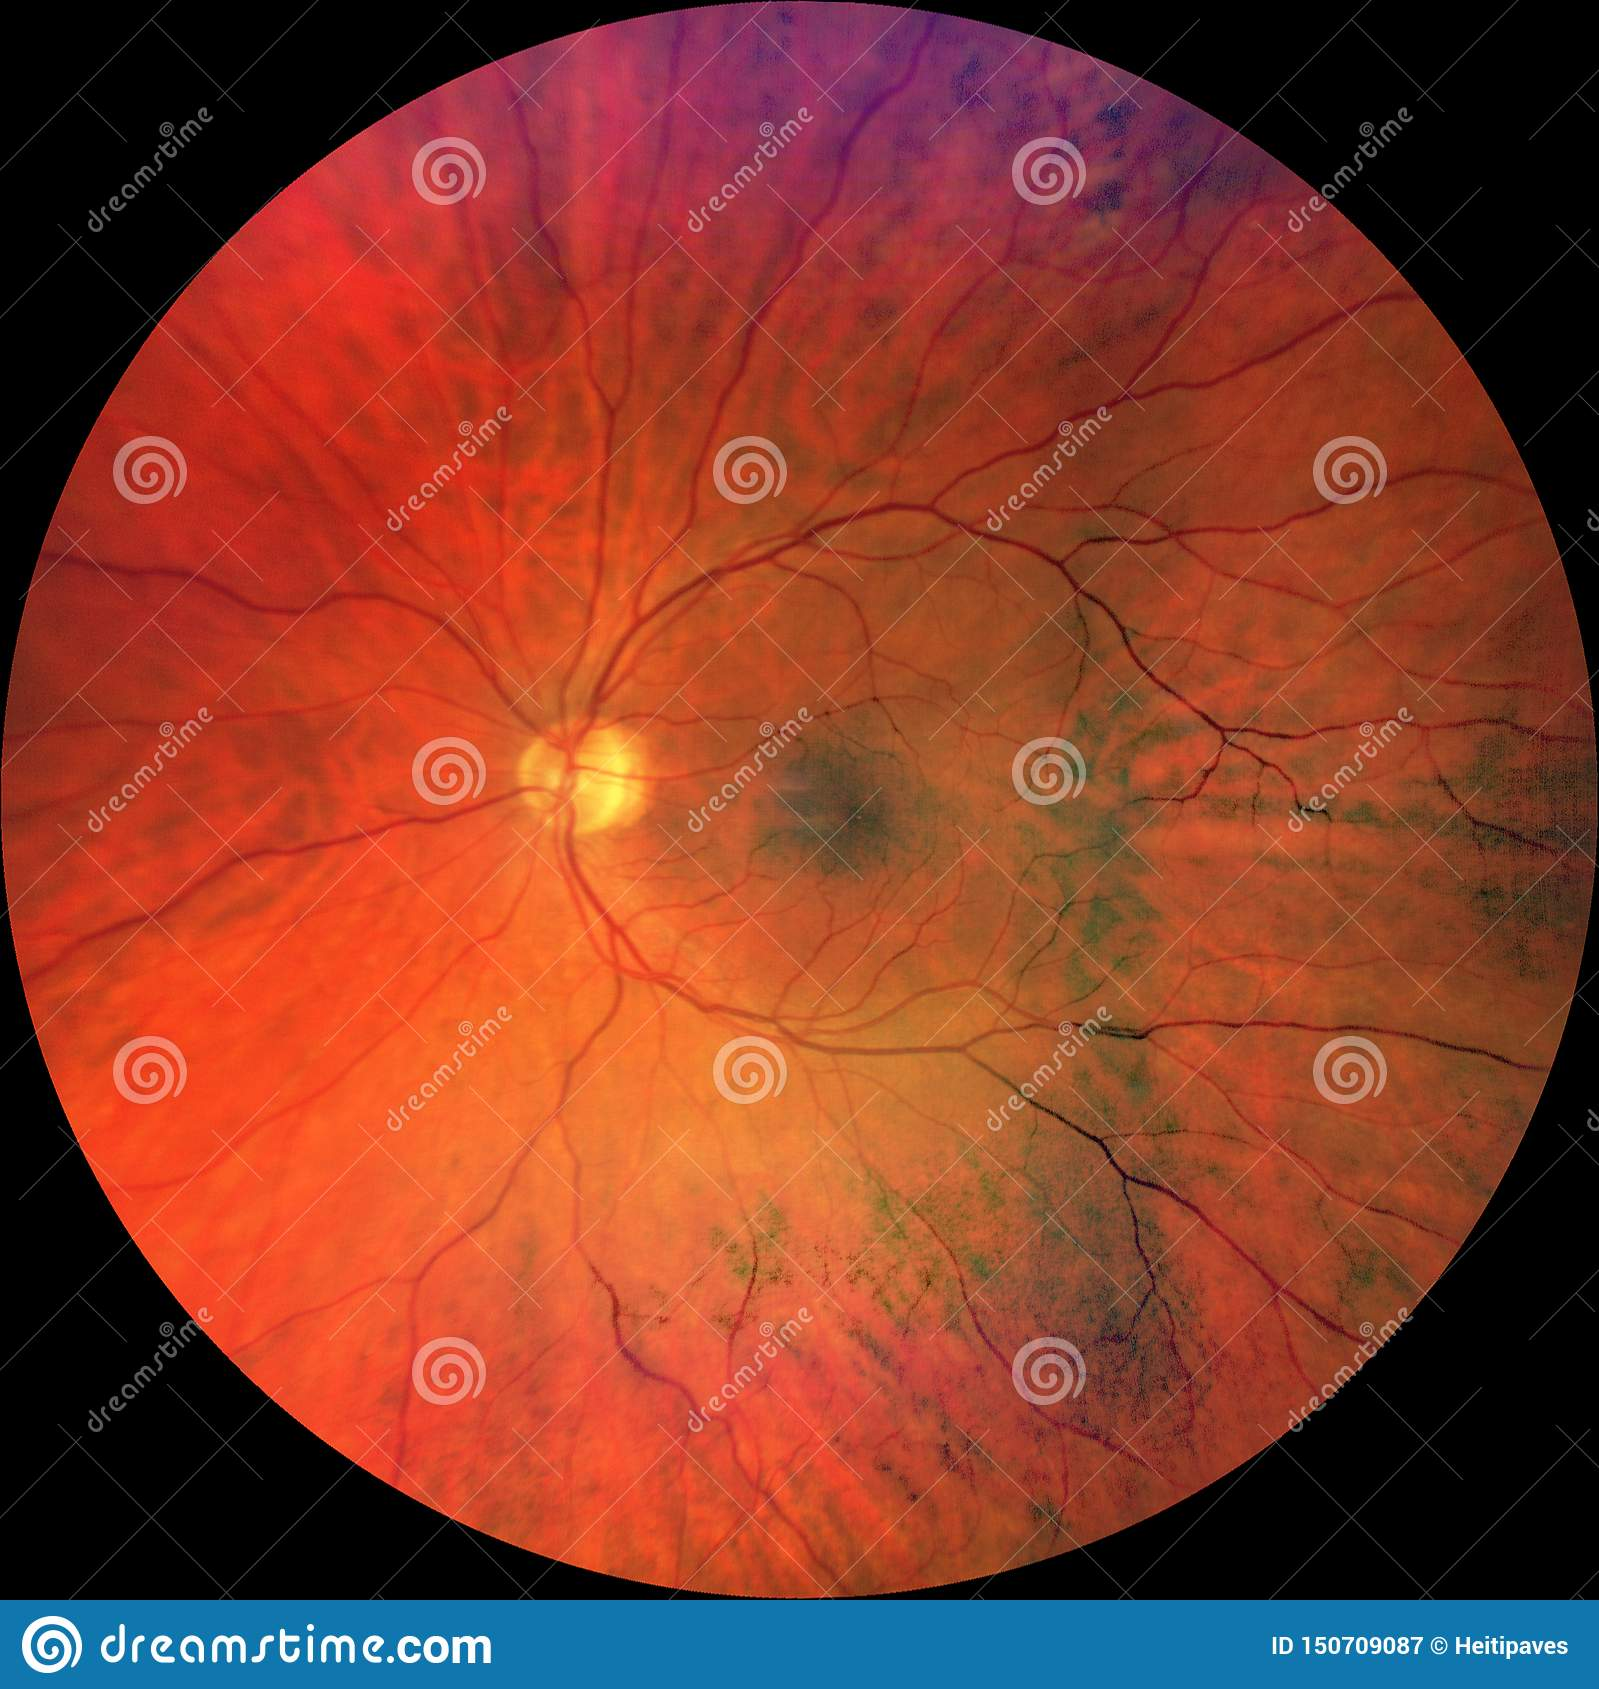 Photograph Of The Fundus Oculi Stock Image - Image of disk..